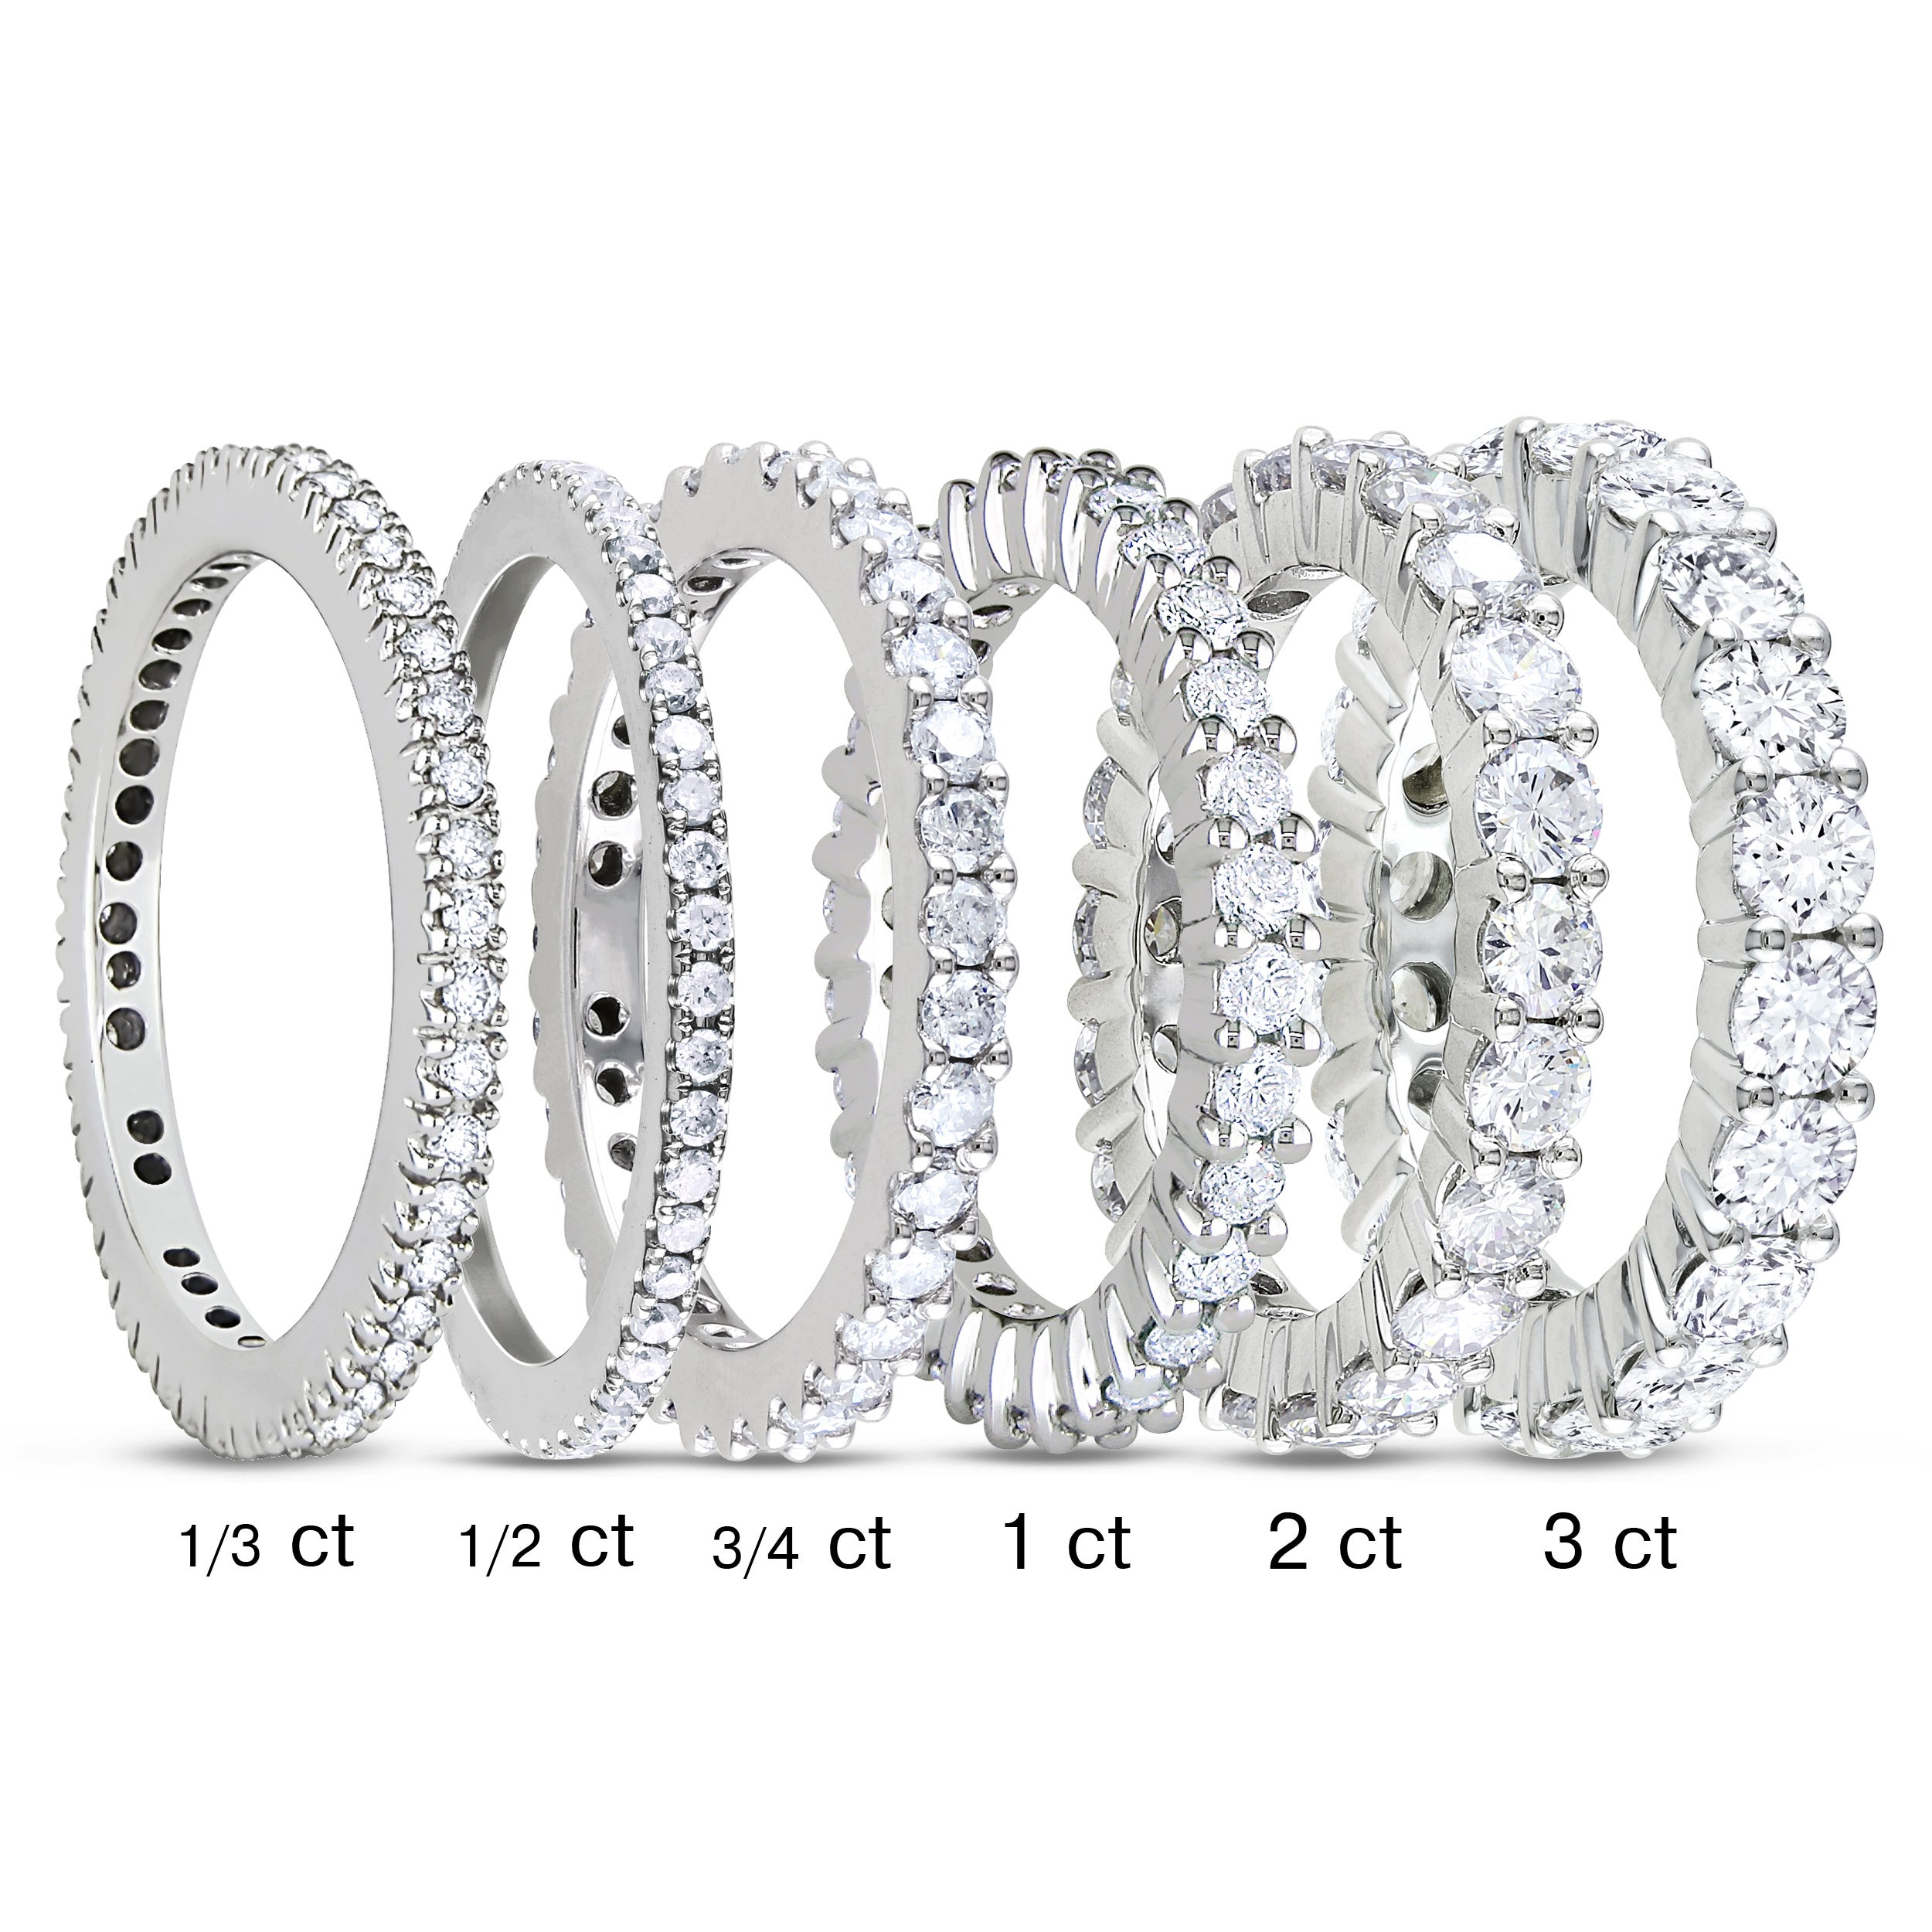 jewelry bands for brilliant diamonds rings carats wide mobile j eternity upload ring id gold at round master in white band diamond carat sale